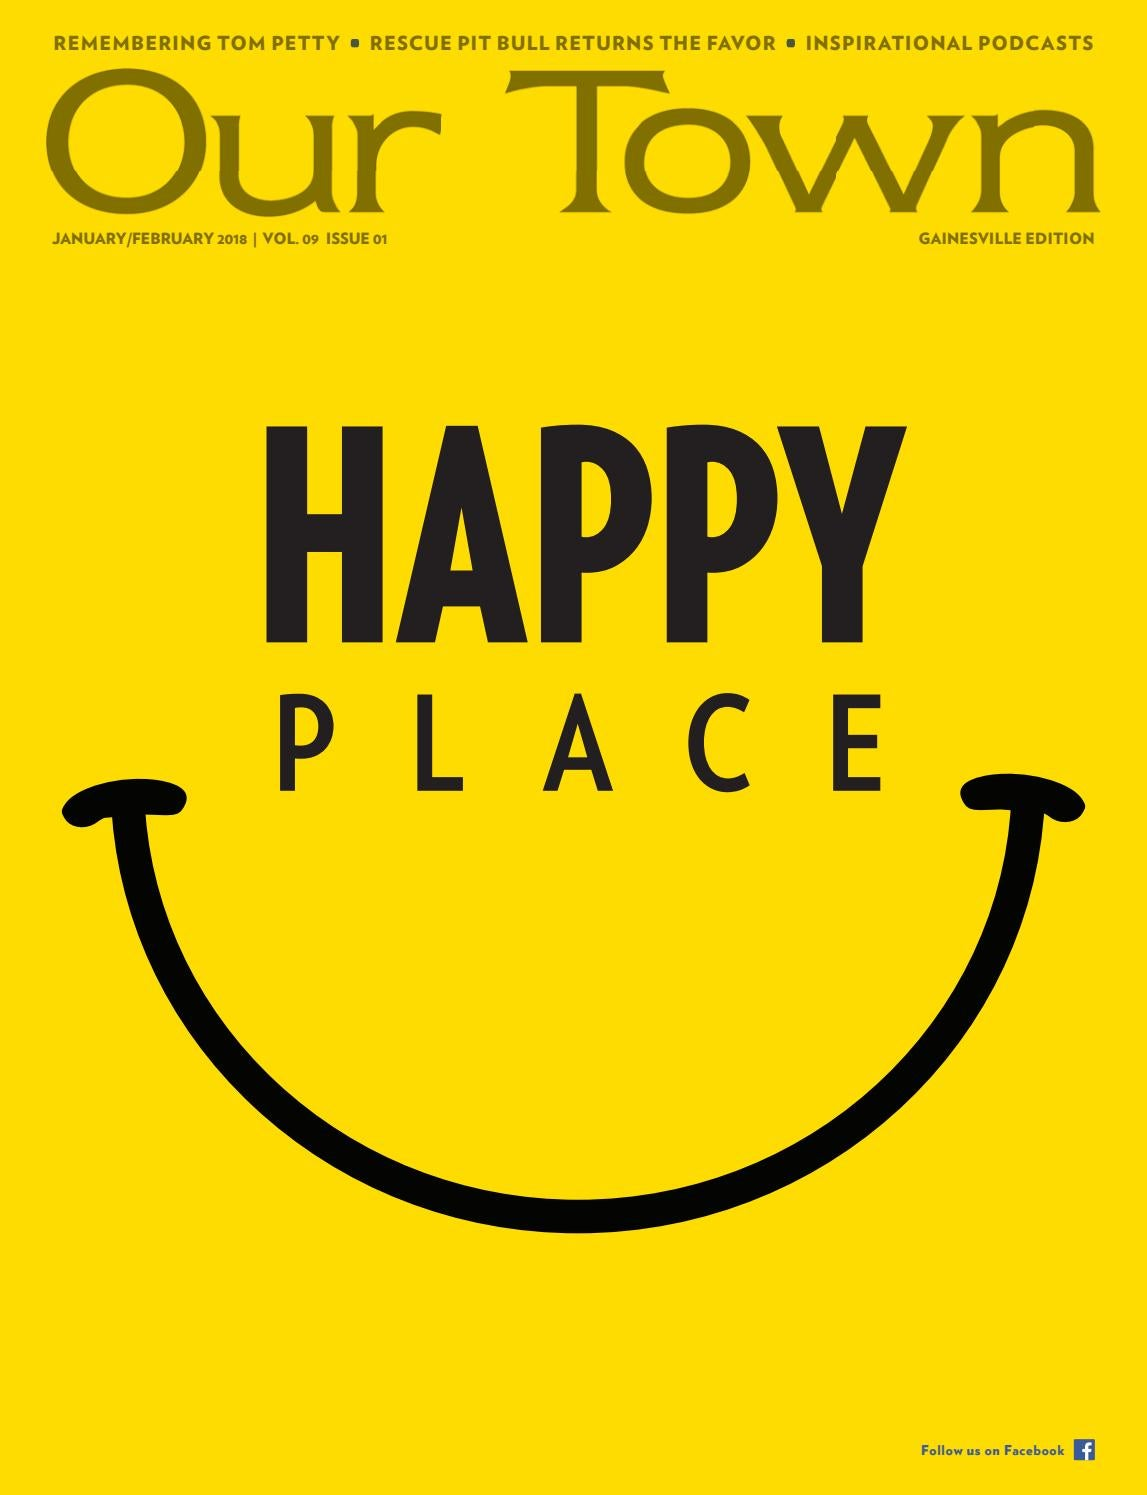 our town 2018 jan feb gainesville by tower publications issuu